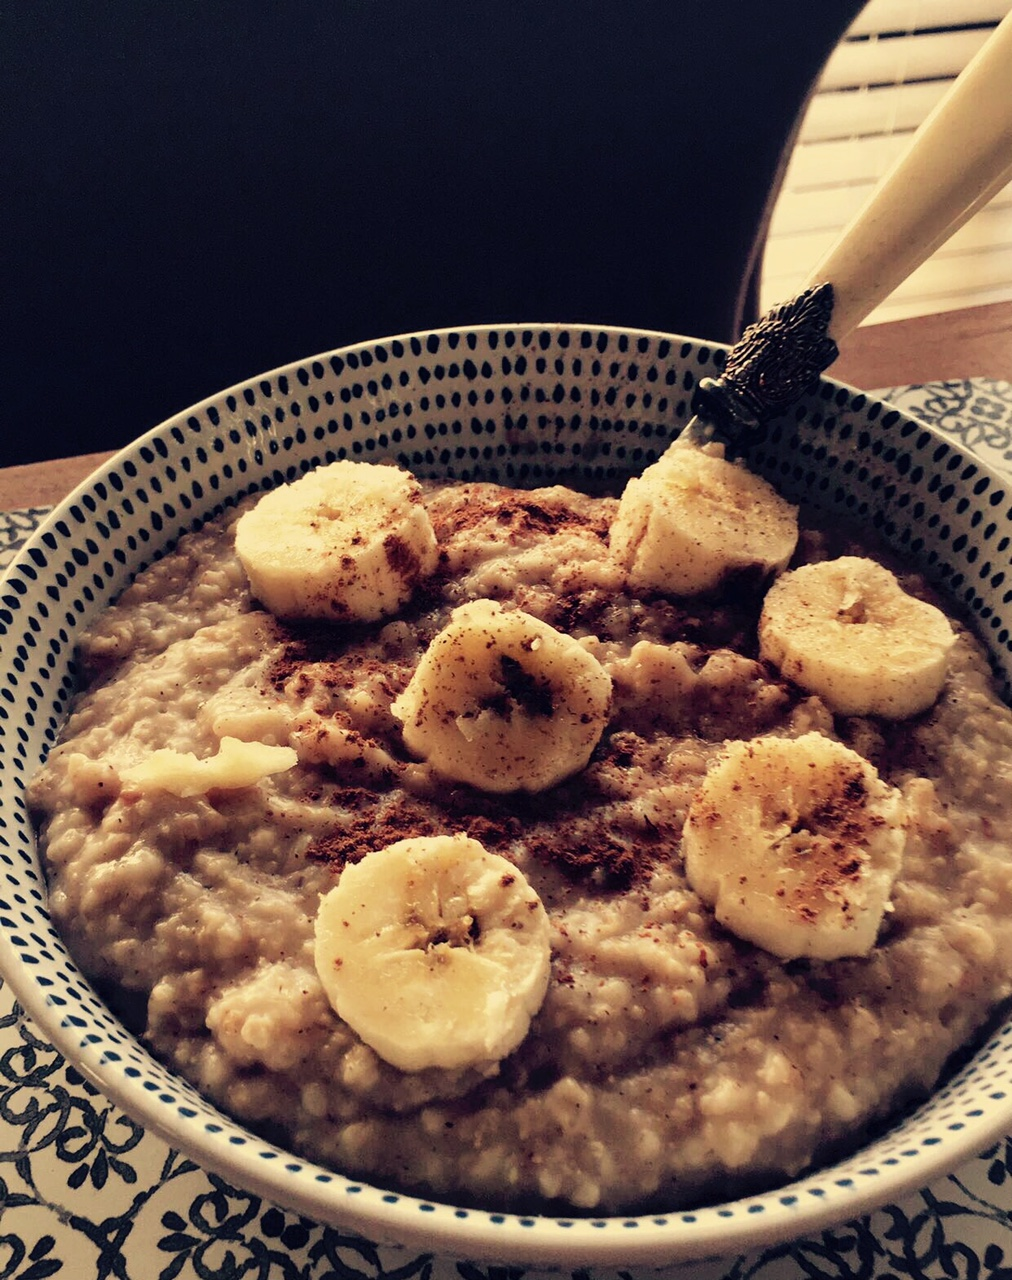 porridge-hygge-breakfast-hygge-style-breakfast-elainesrovesntroves